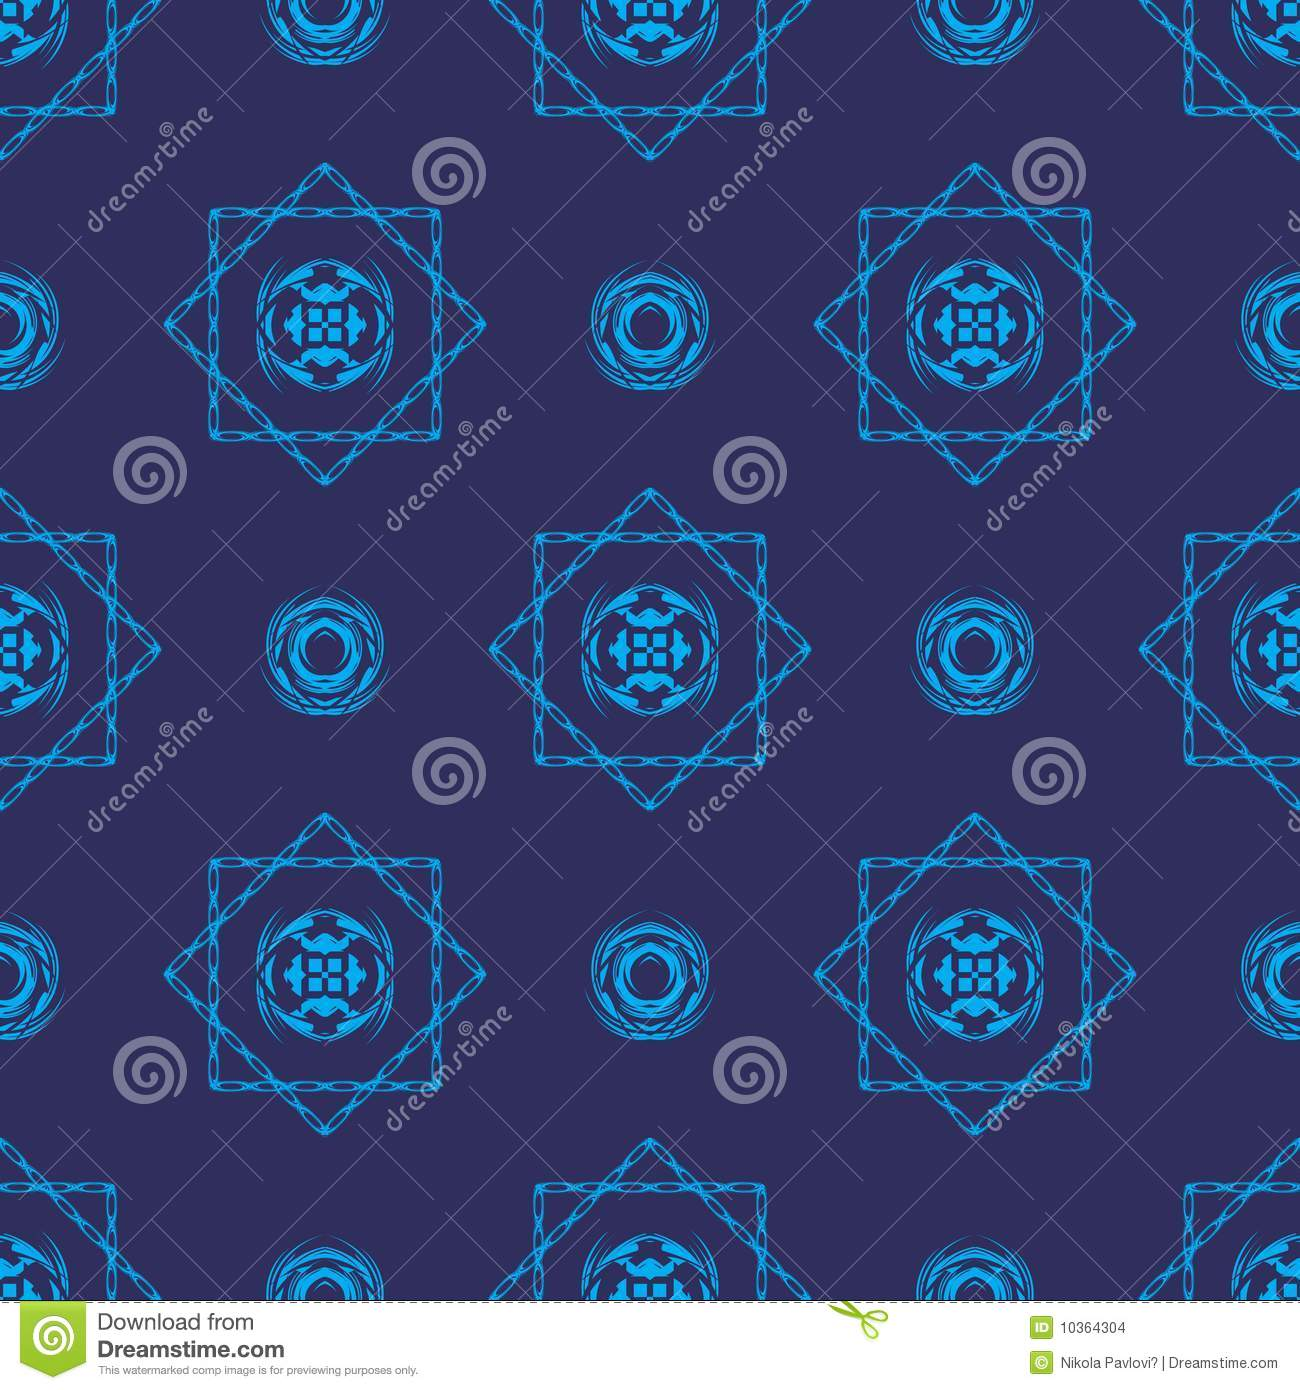 Blue Tribal Wallpapers: Wallpaper Blue Tribal Stock Images